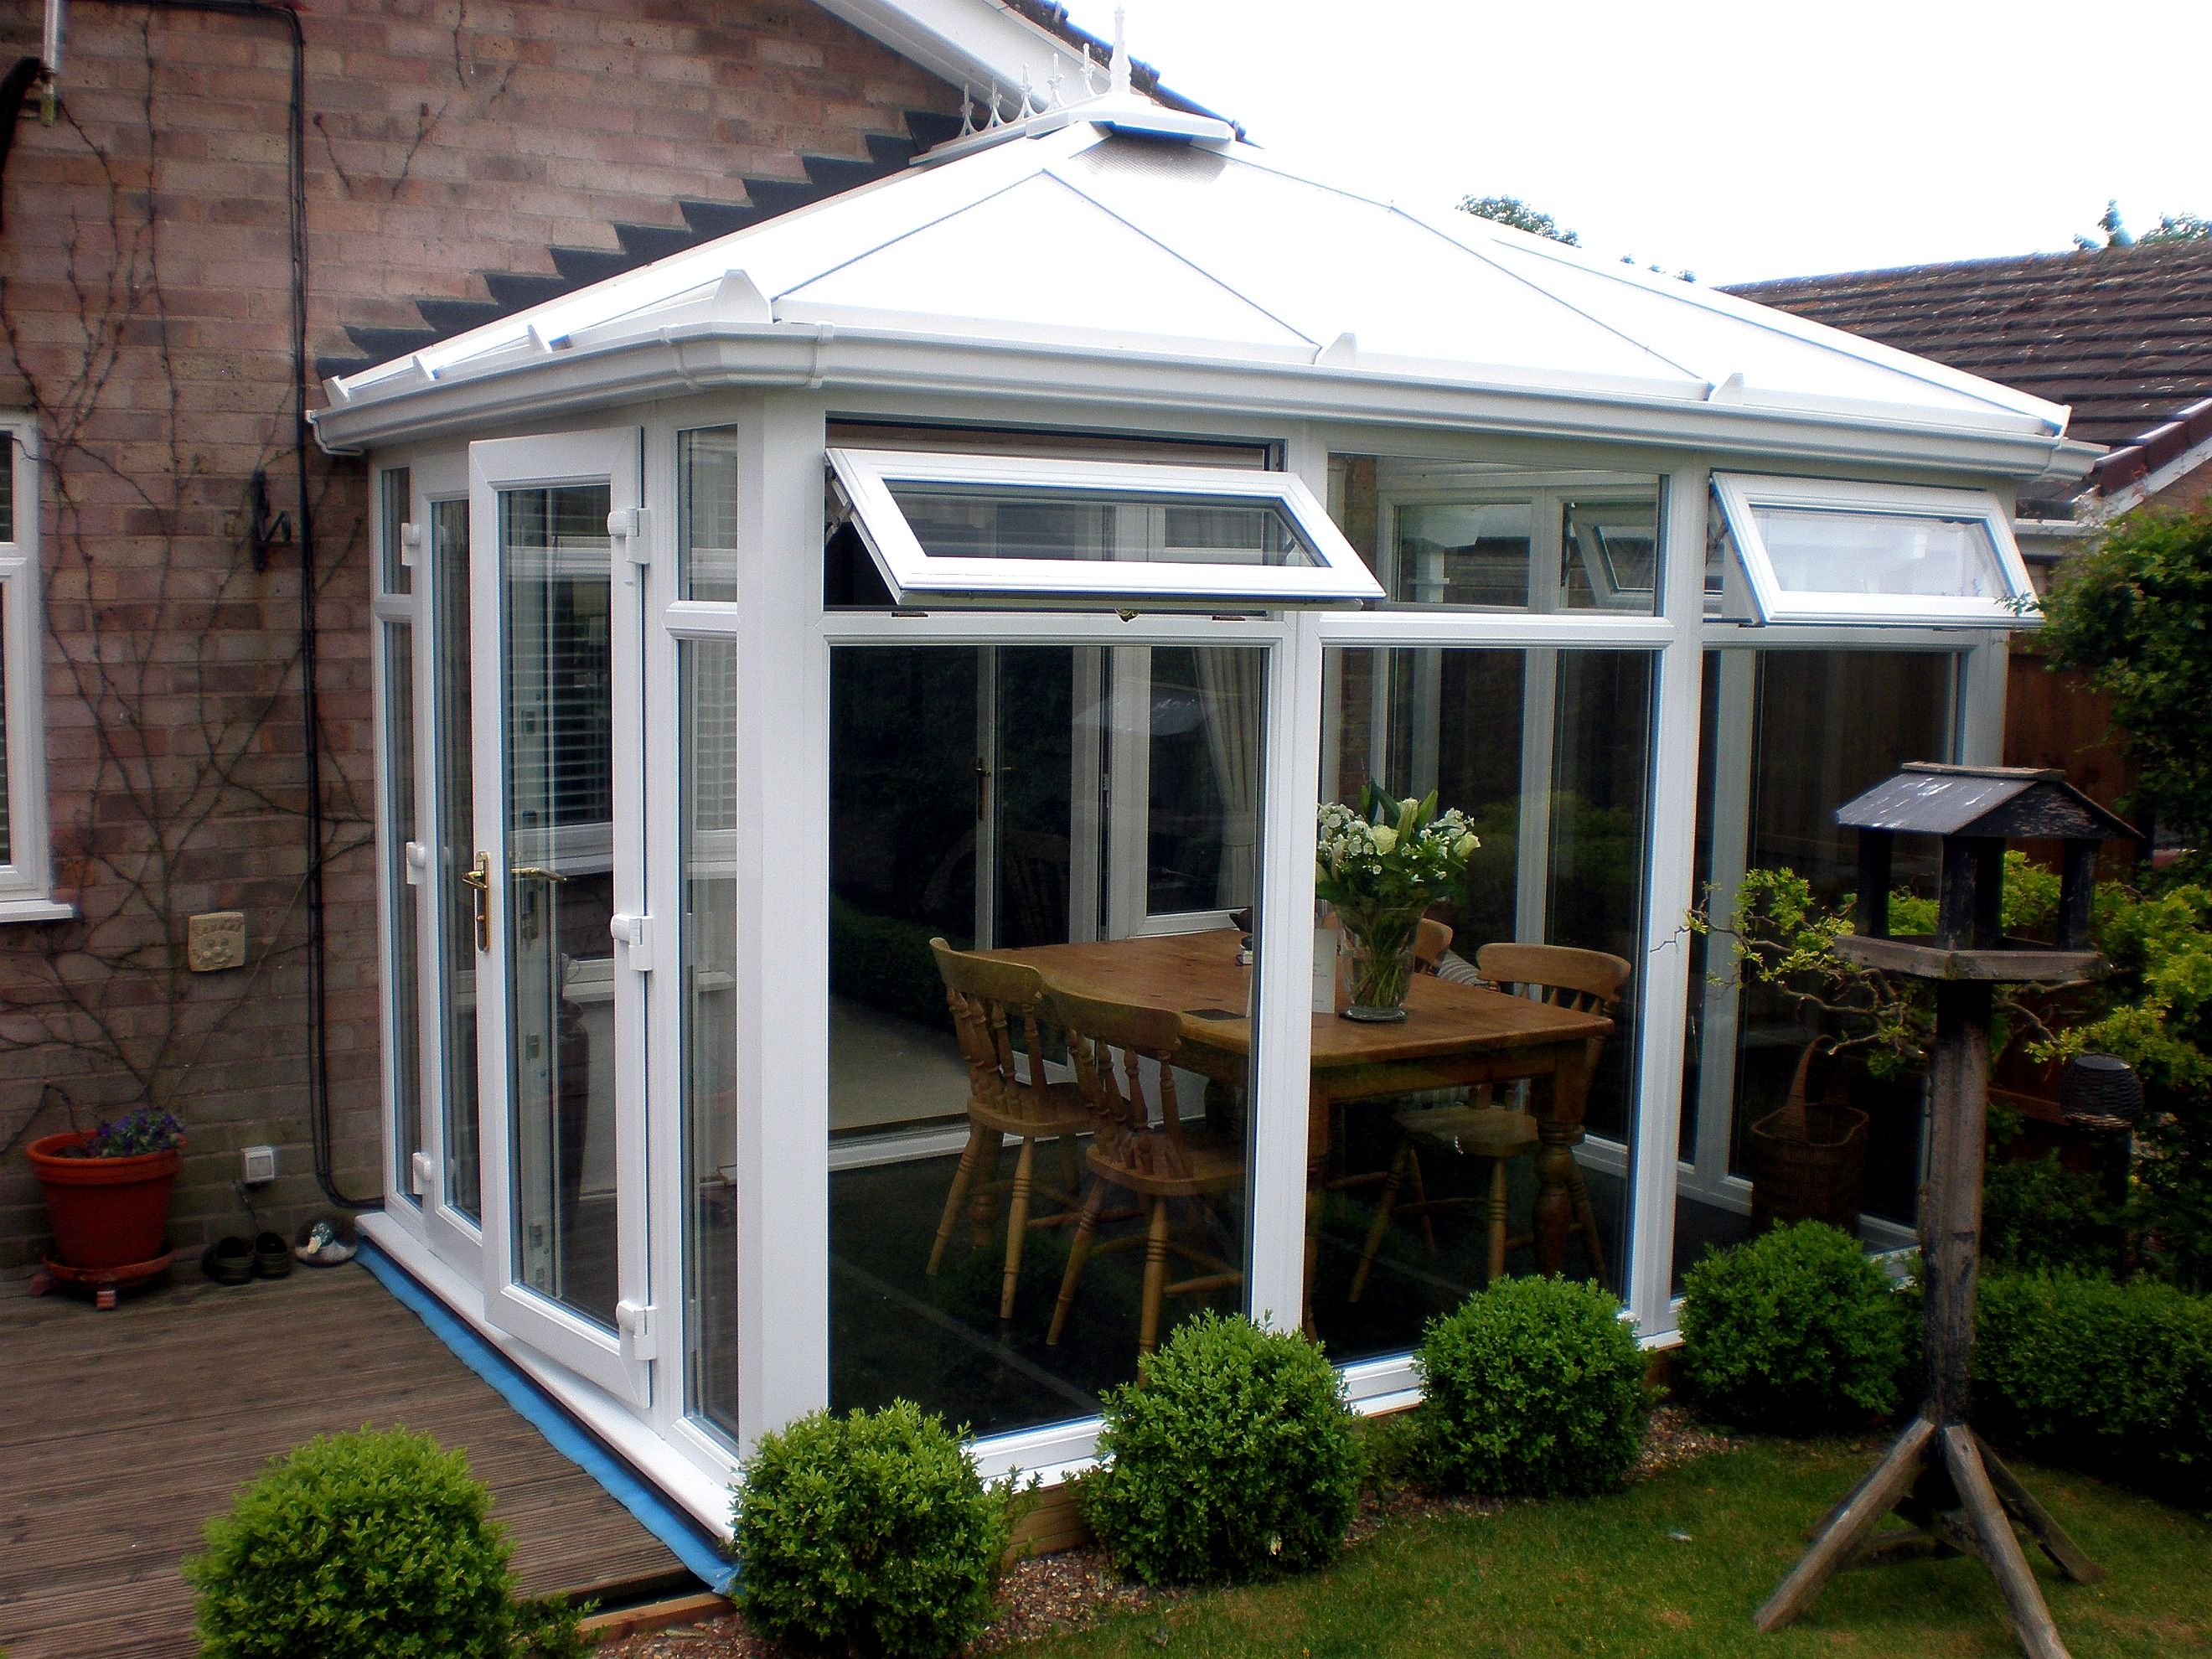 White PVCu DIY Edwardian Conservatory, Full-Height Glass Model. Manufactured and supplied by ConservatoryLand DIY Conservatories.